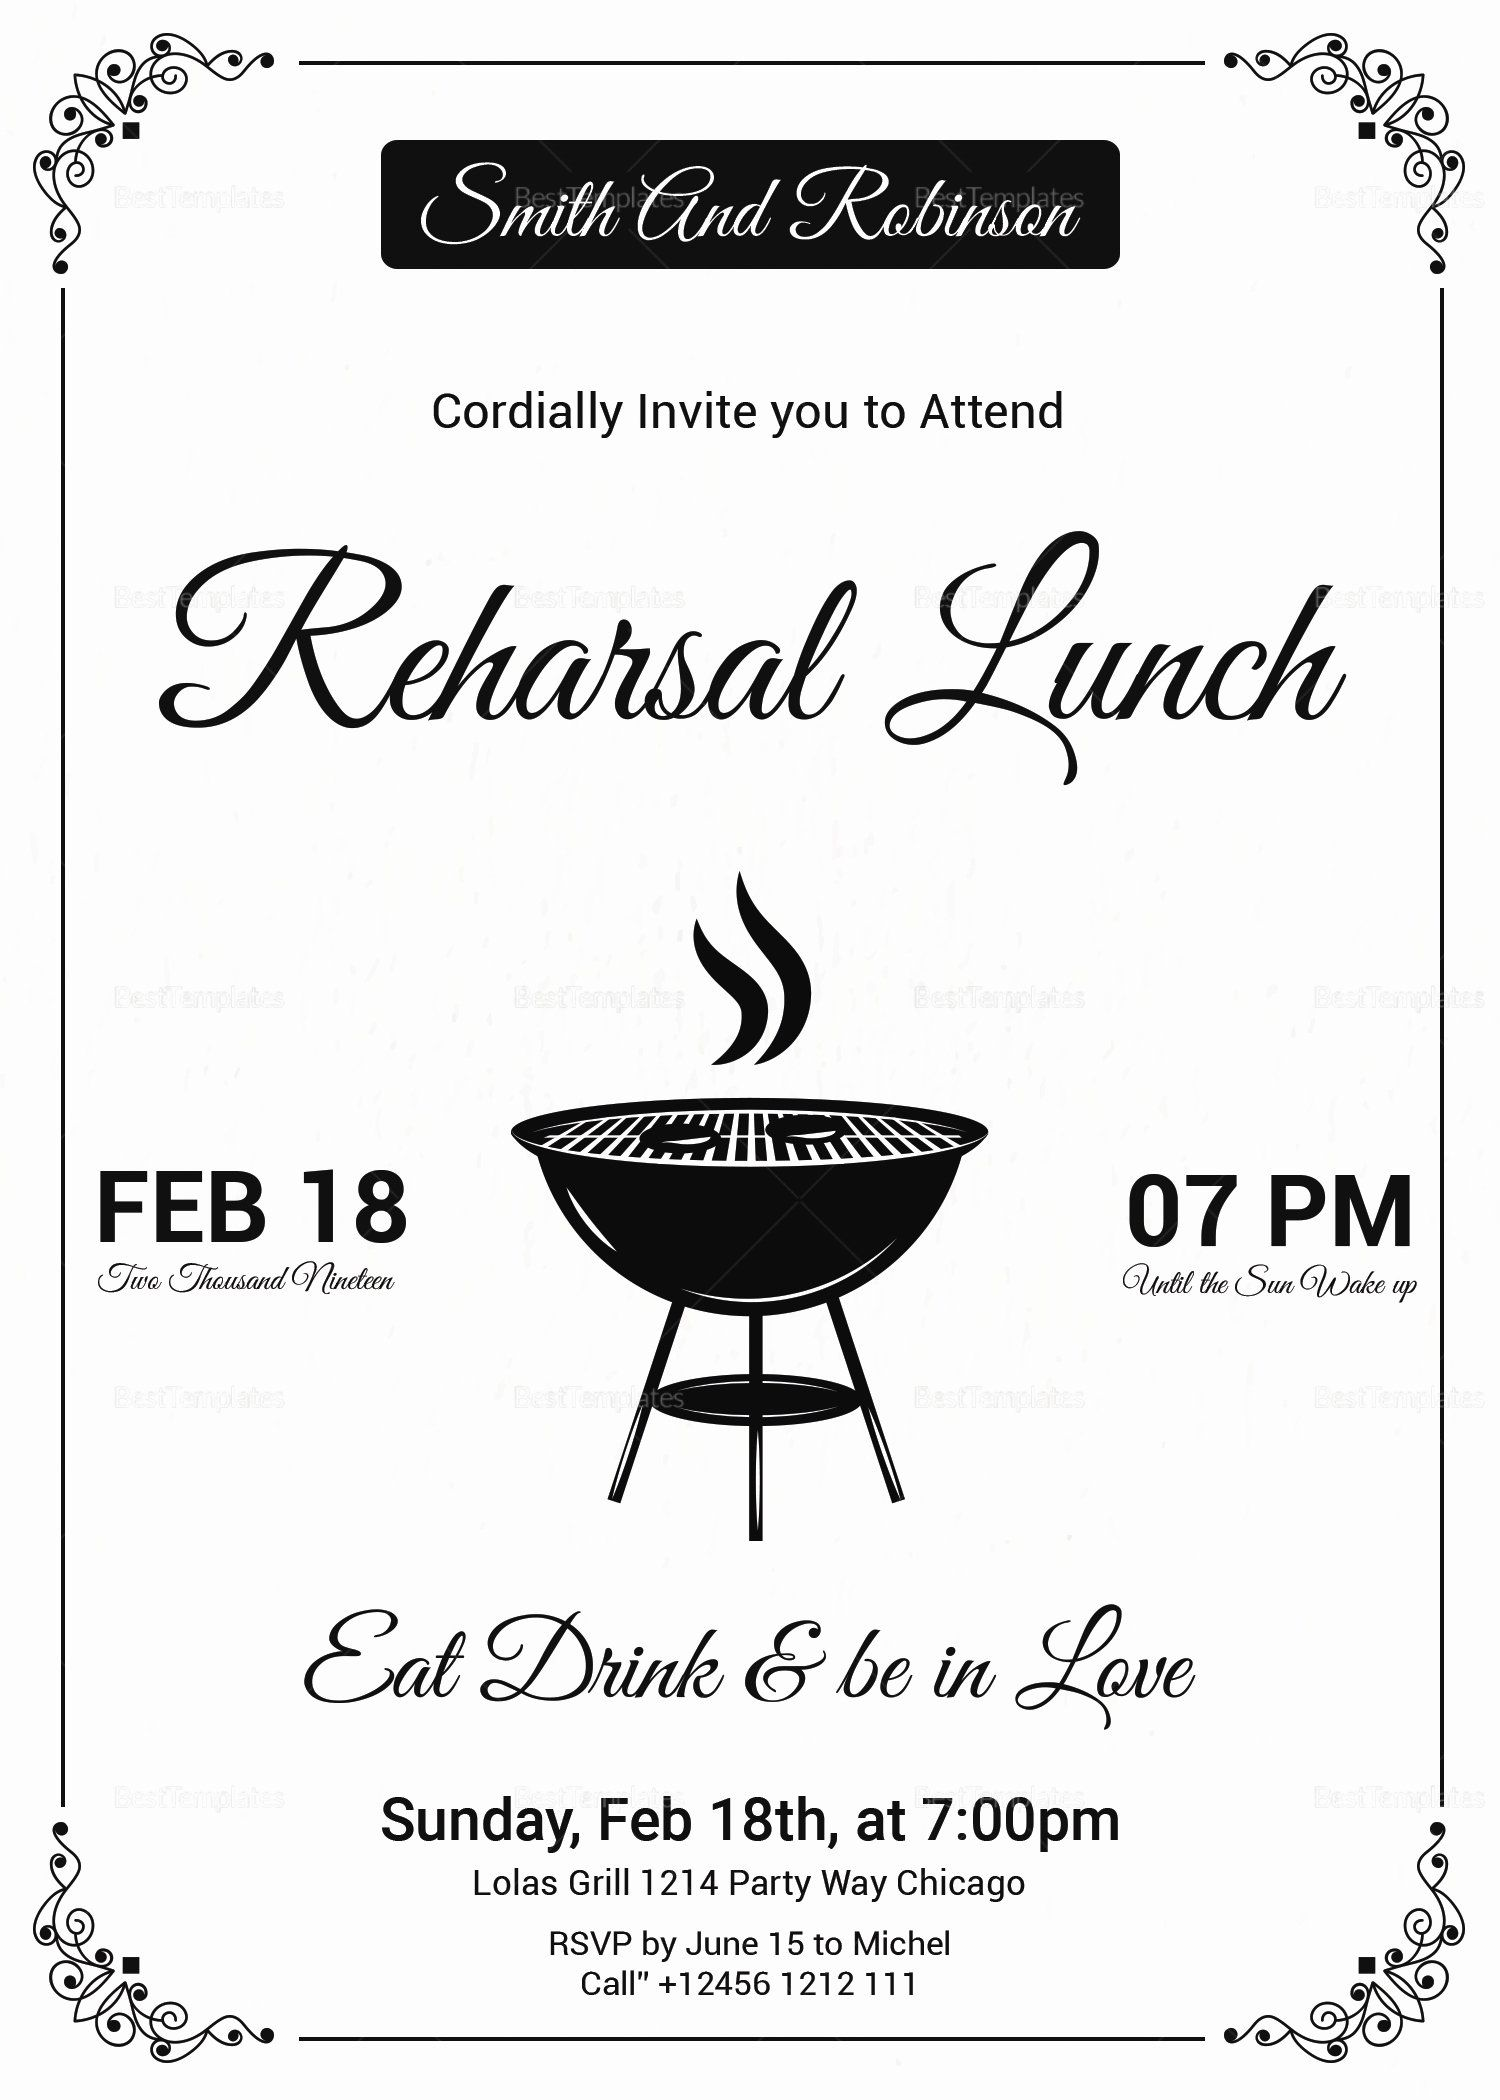 Elegant Free Lunch Invitation Template In 2020 Holiday Party